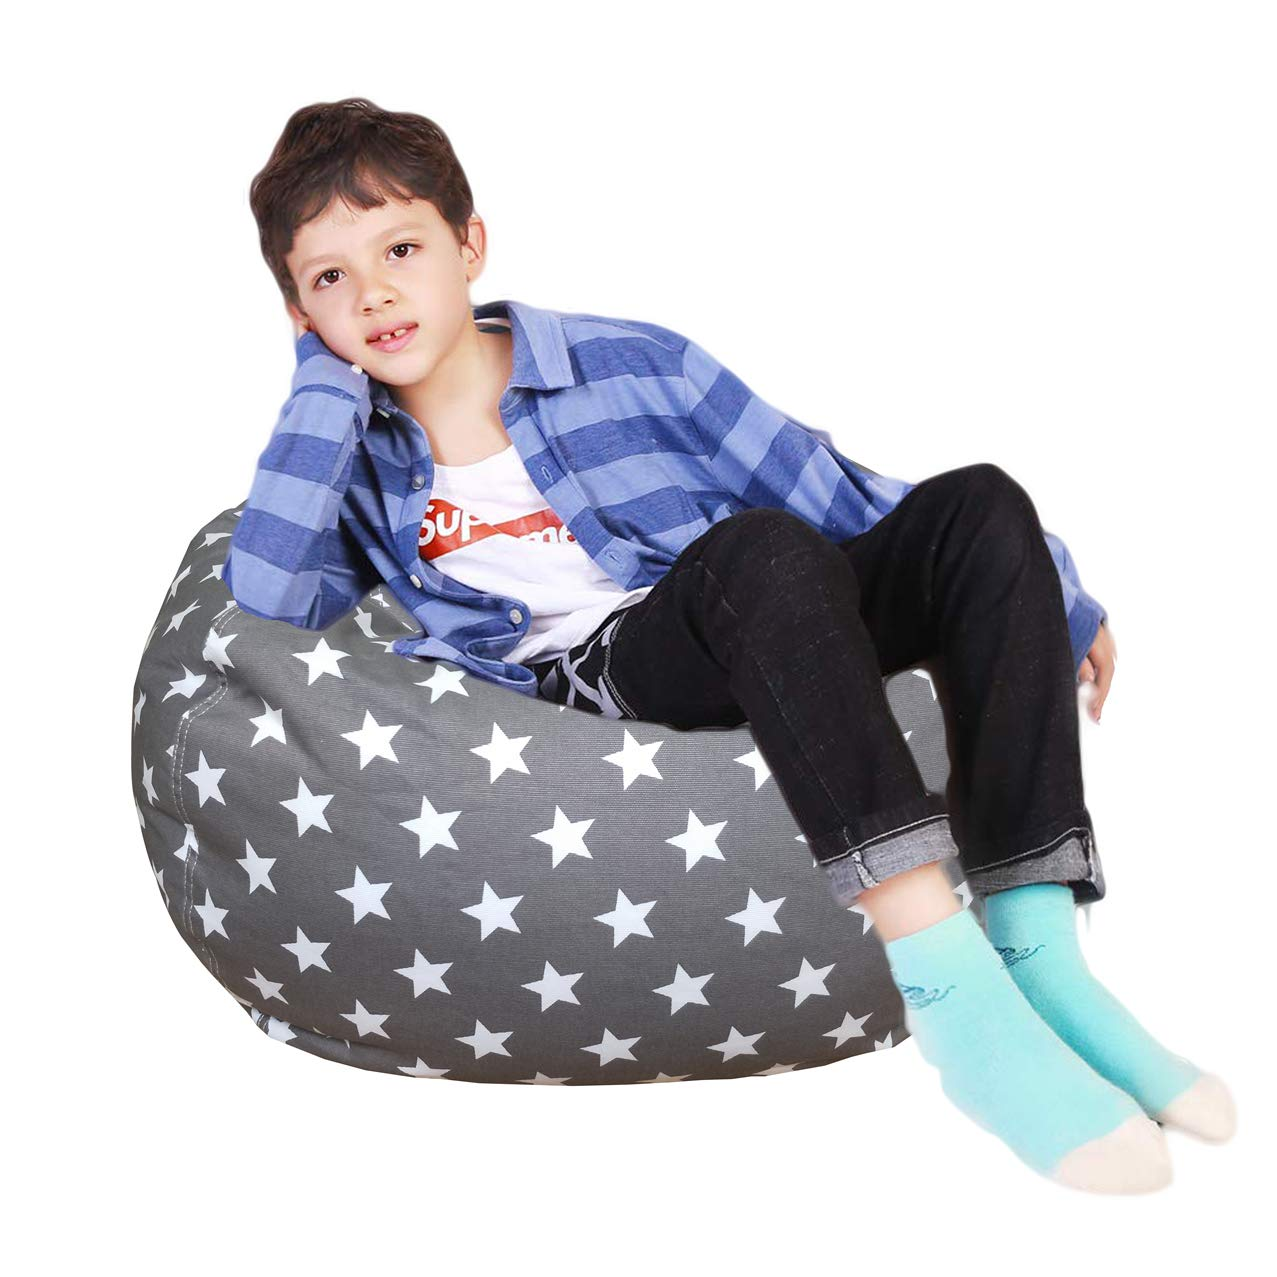 Lukeight Stuffed Animal Storage Bean Bag Chair, Bean Bag Cover for Organizing Kid s Room – Fits a Lot of Stuffed Animals, Large Stars Gray